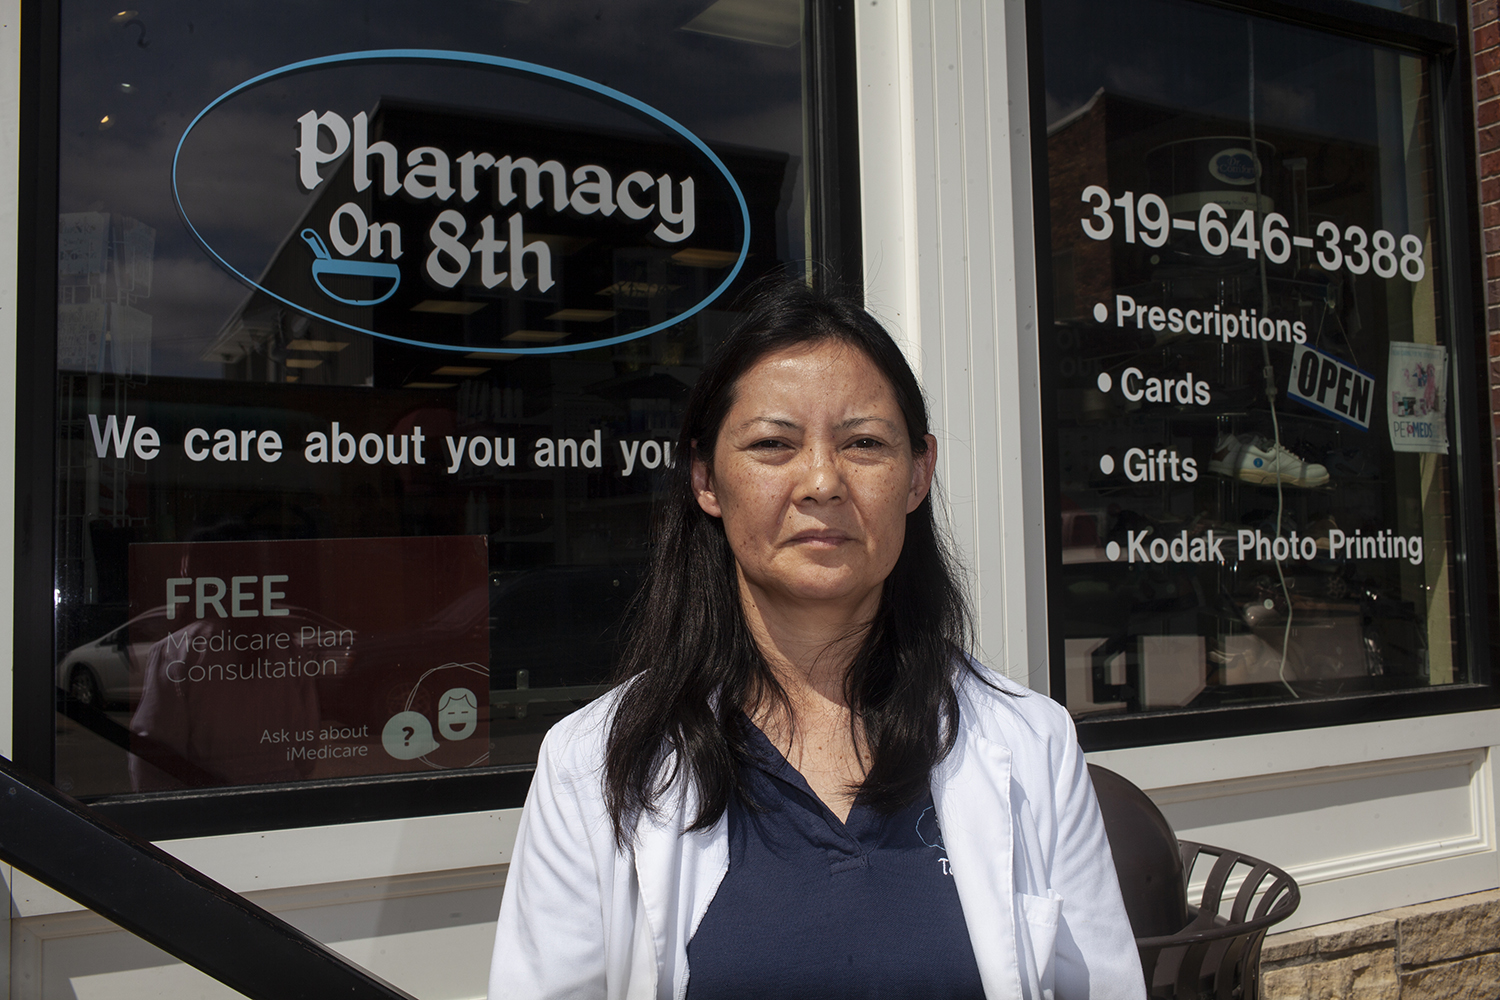 Pharmacist Tess de Jesus-Roetlin poses for a portrait in front of Pharmacy on 8th in Wellman Iowa, which she owns and operates, on Wednesday, Aug. 29, 2018. De Jesus-Roetlin says that the loss of local pharmacies in rural communities can create difficulties for patients in accessing their medication and information about treatment options, especially among elderly patients.